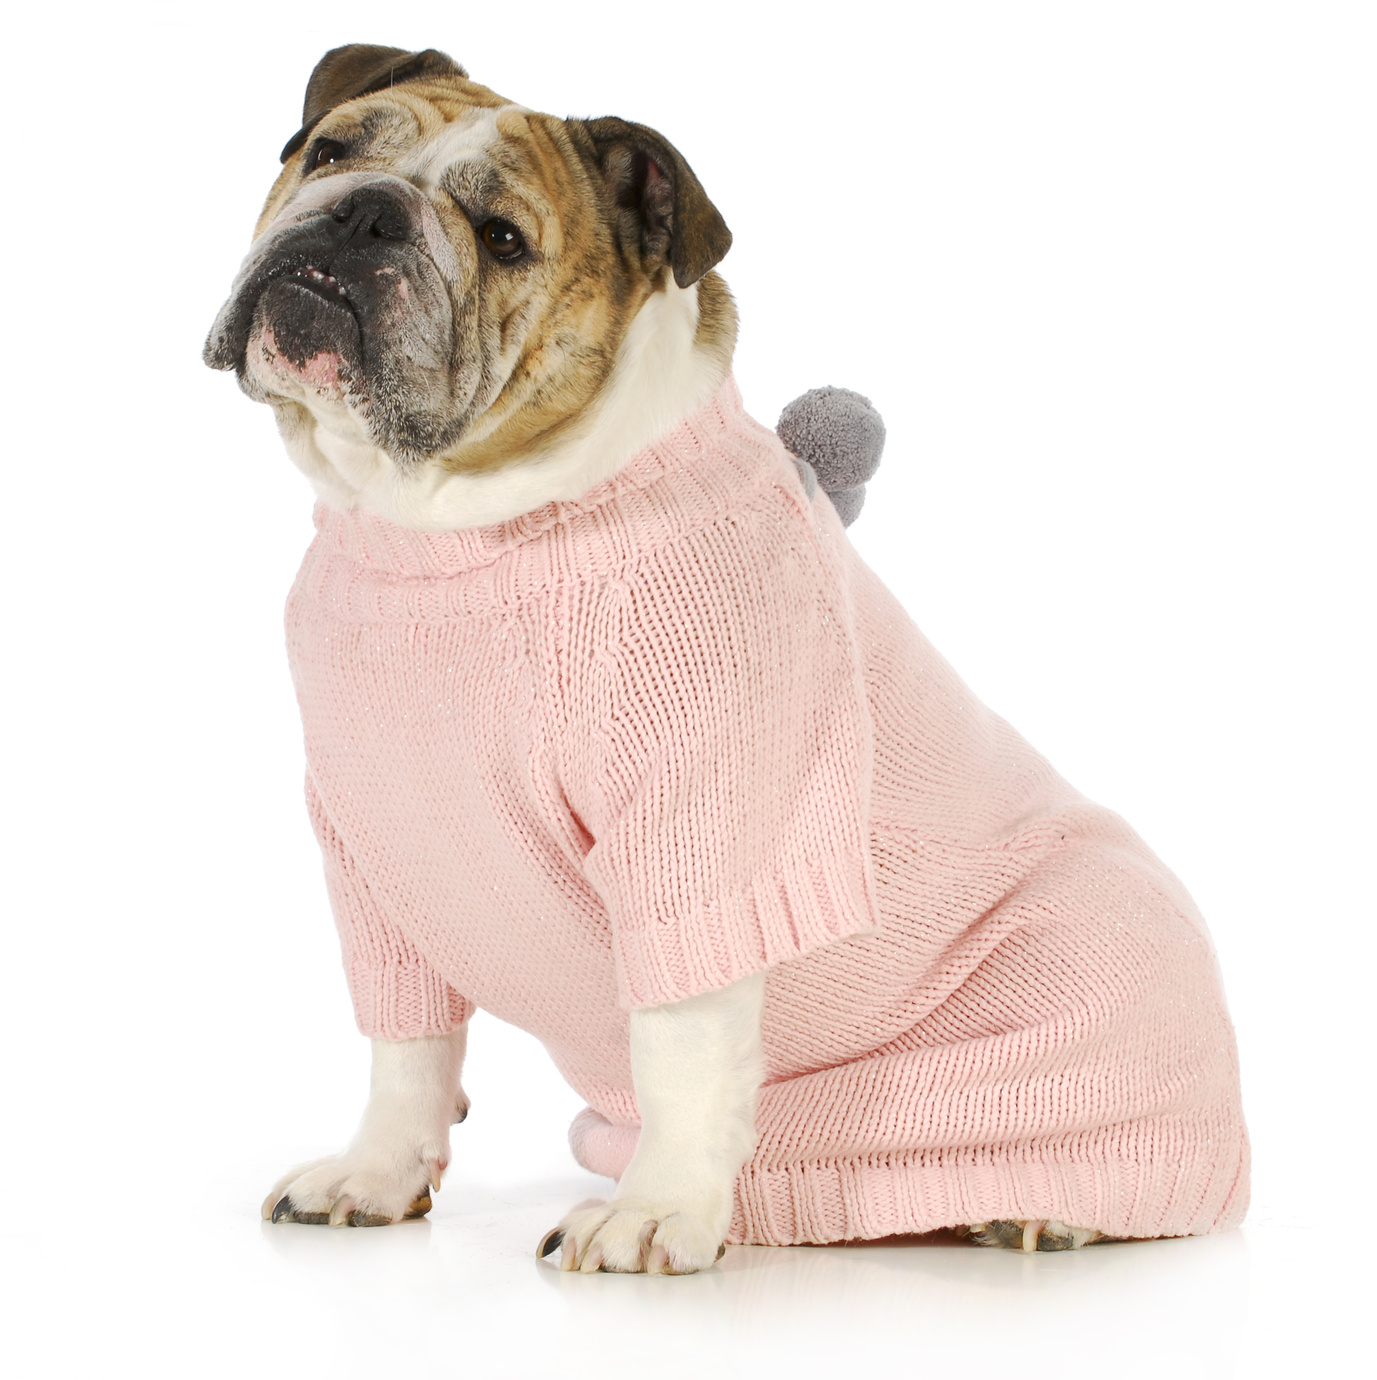 Dress up your pet day - Celebrate National Dress Up Your Pet Day In January Dog Wearing Sweater